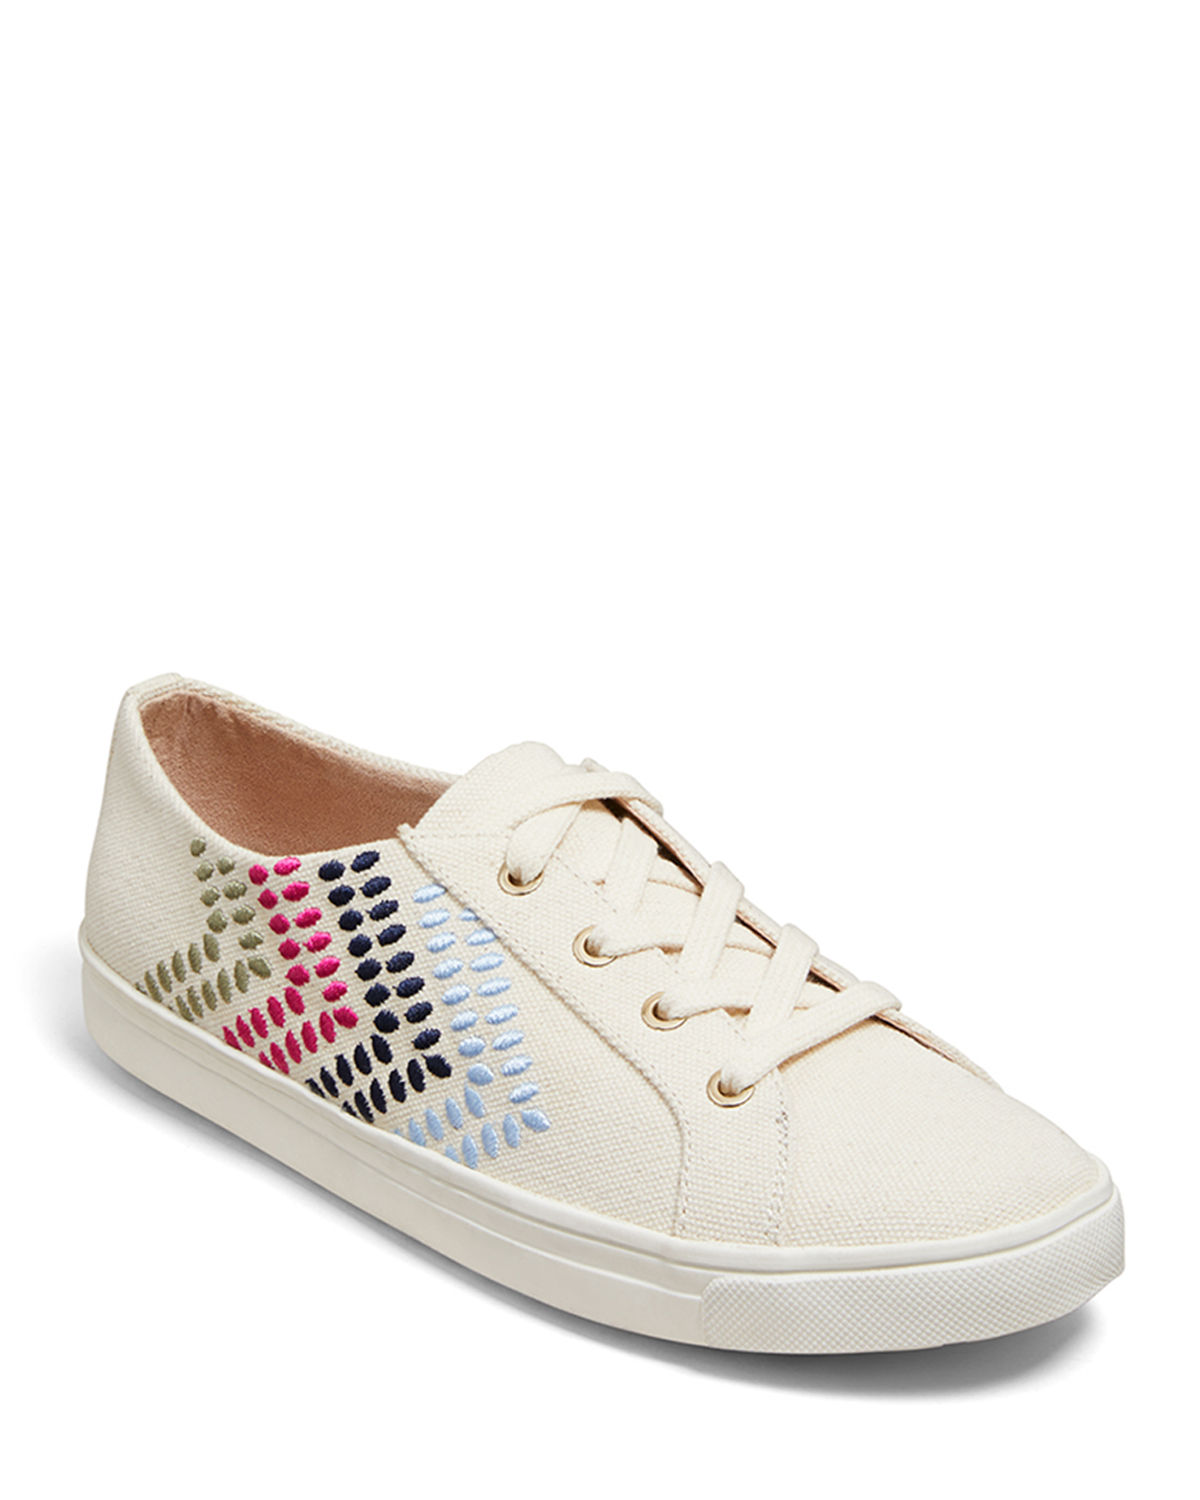 Luna Canvas Lace-Up Sneakers